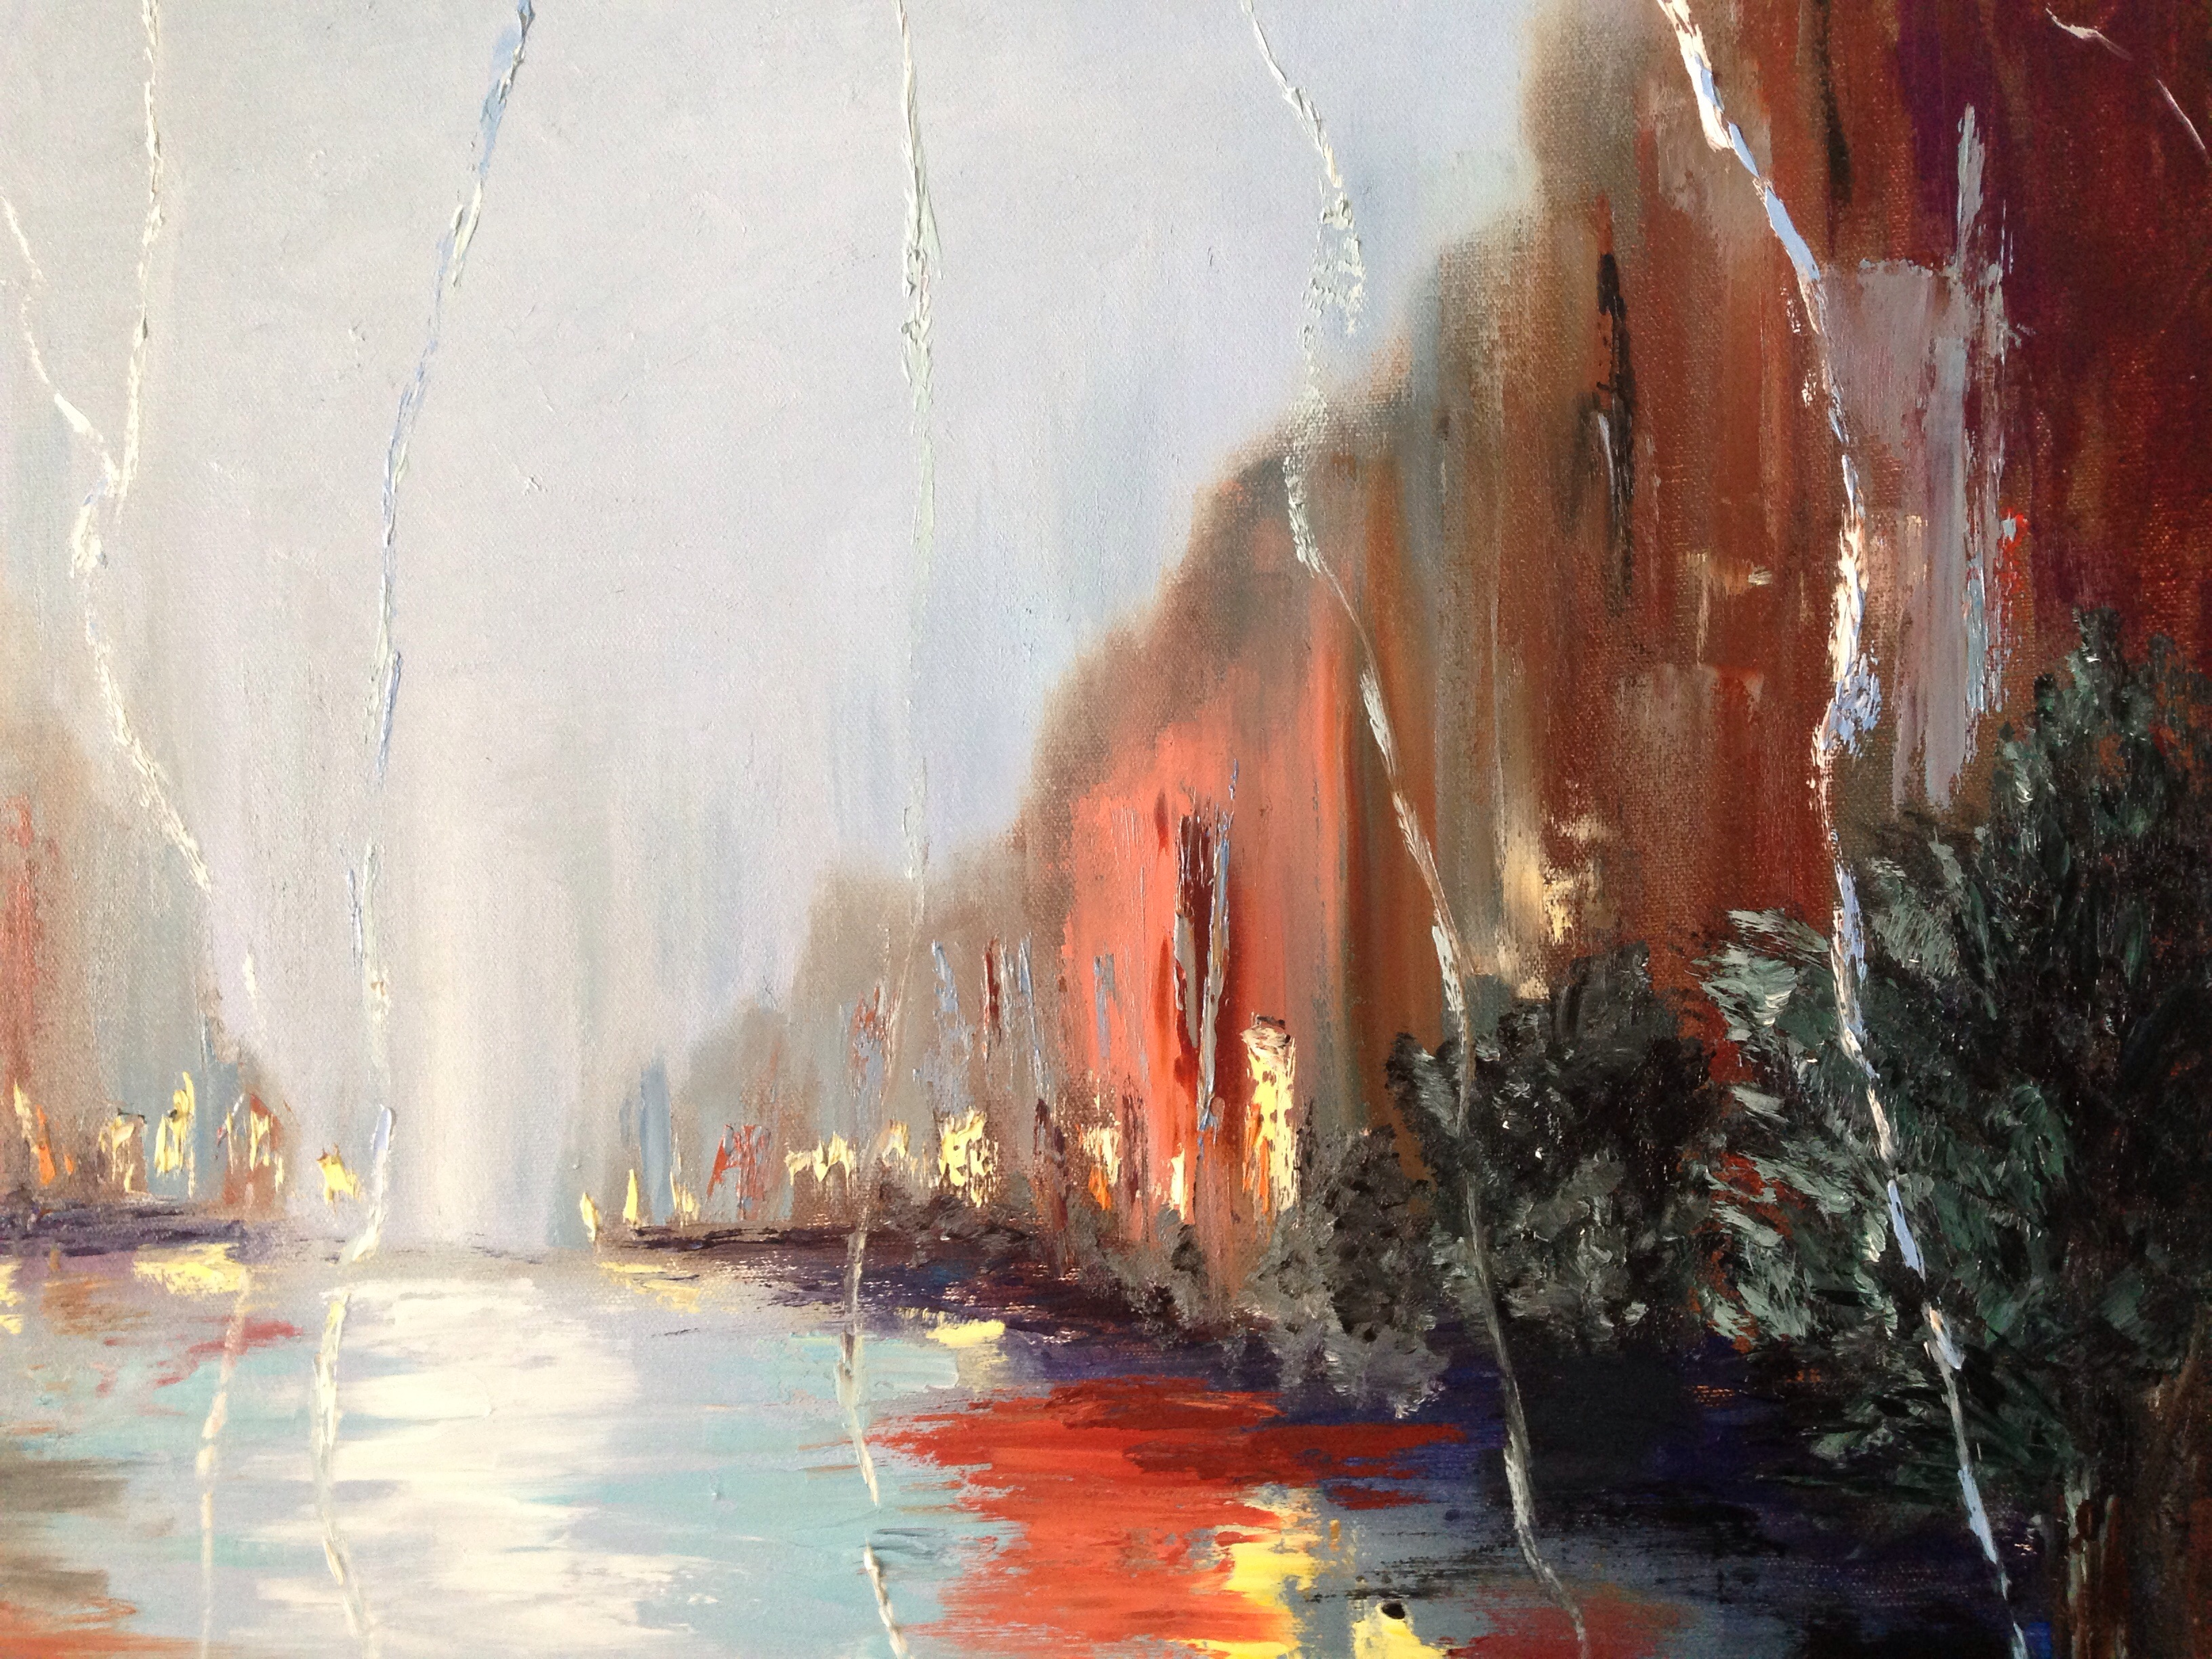 Rainy night in the city version ii i learn painting for Www painting com